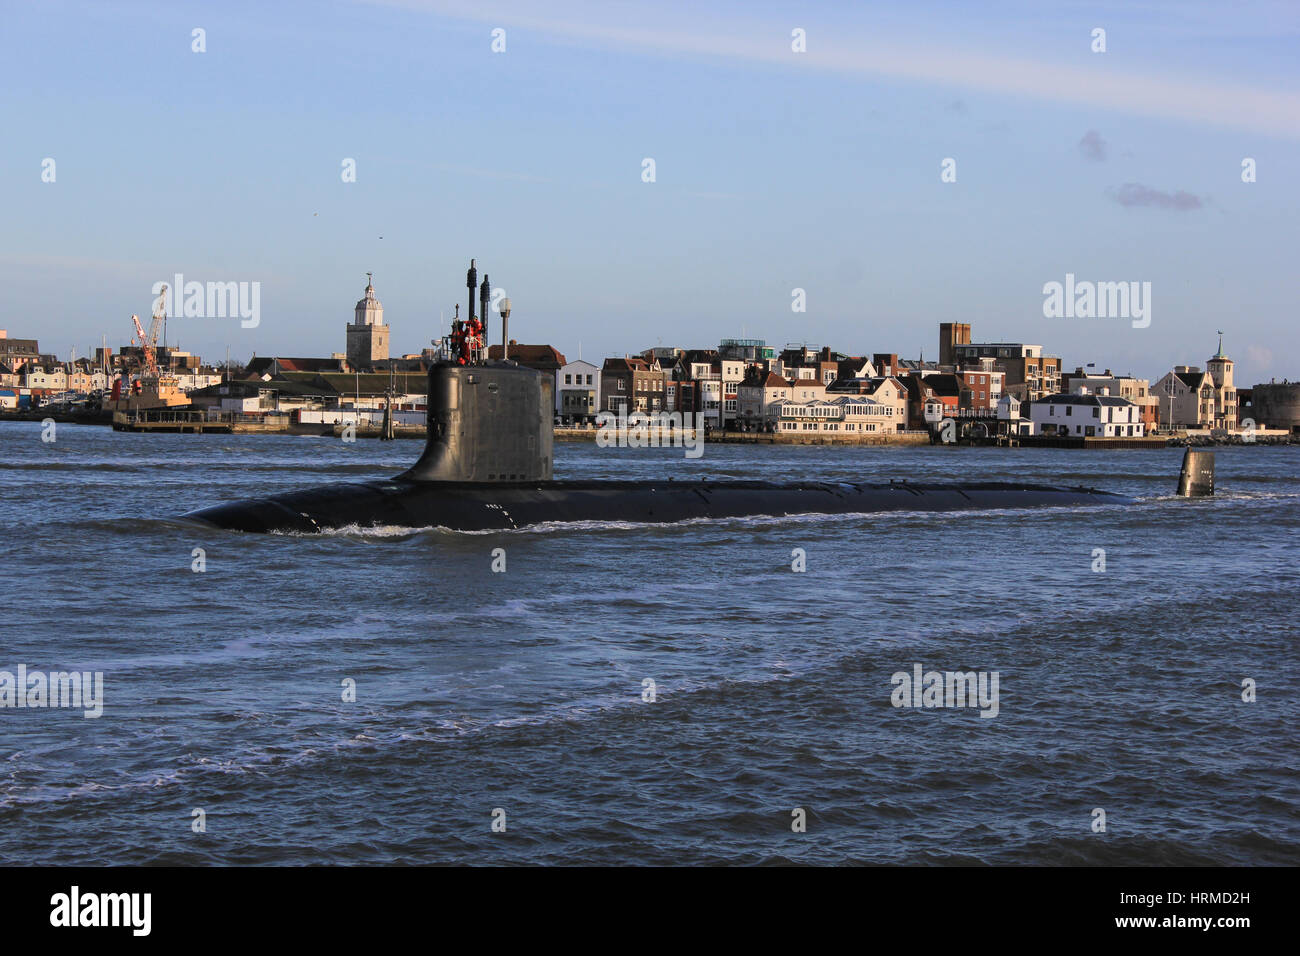 Virginia Class Nuclear Submarine USS New Hampshire (SSN-778) arrives in to Portsmouth Harbour - Stock Image